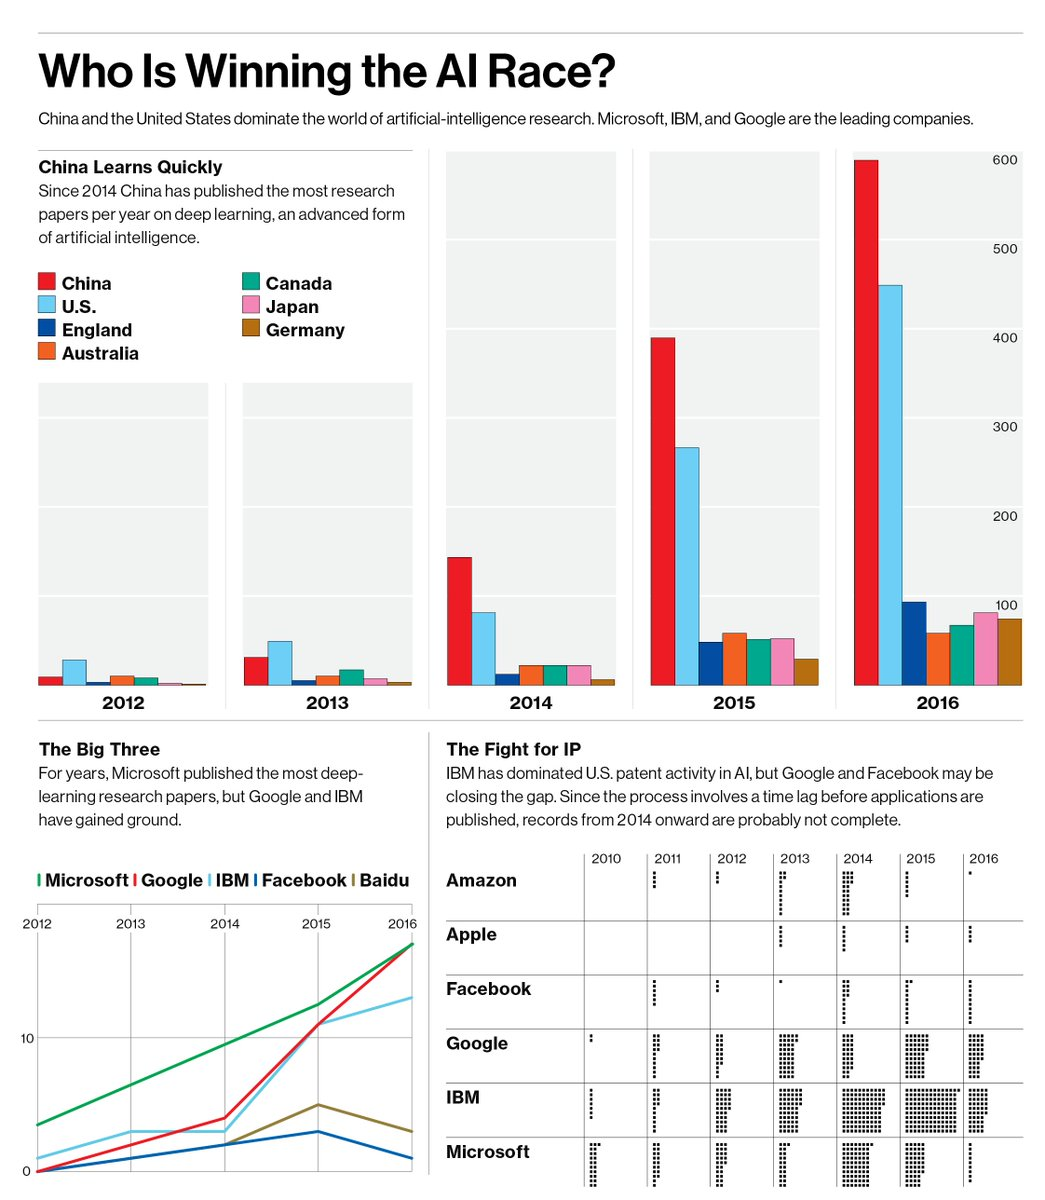 MIT Technology Review: Who is winning the AI race? #AI #MachineLearning #deeplearning #ML #DL #tech  https://www. technologyreview.com/s/608112/who-i s-winning-the-ai-race/ &nbsp; … <br>http://pic.twitter.com/bxtSmBn0rk